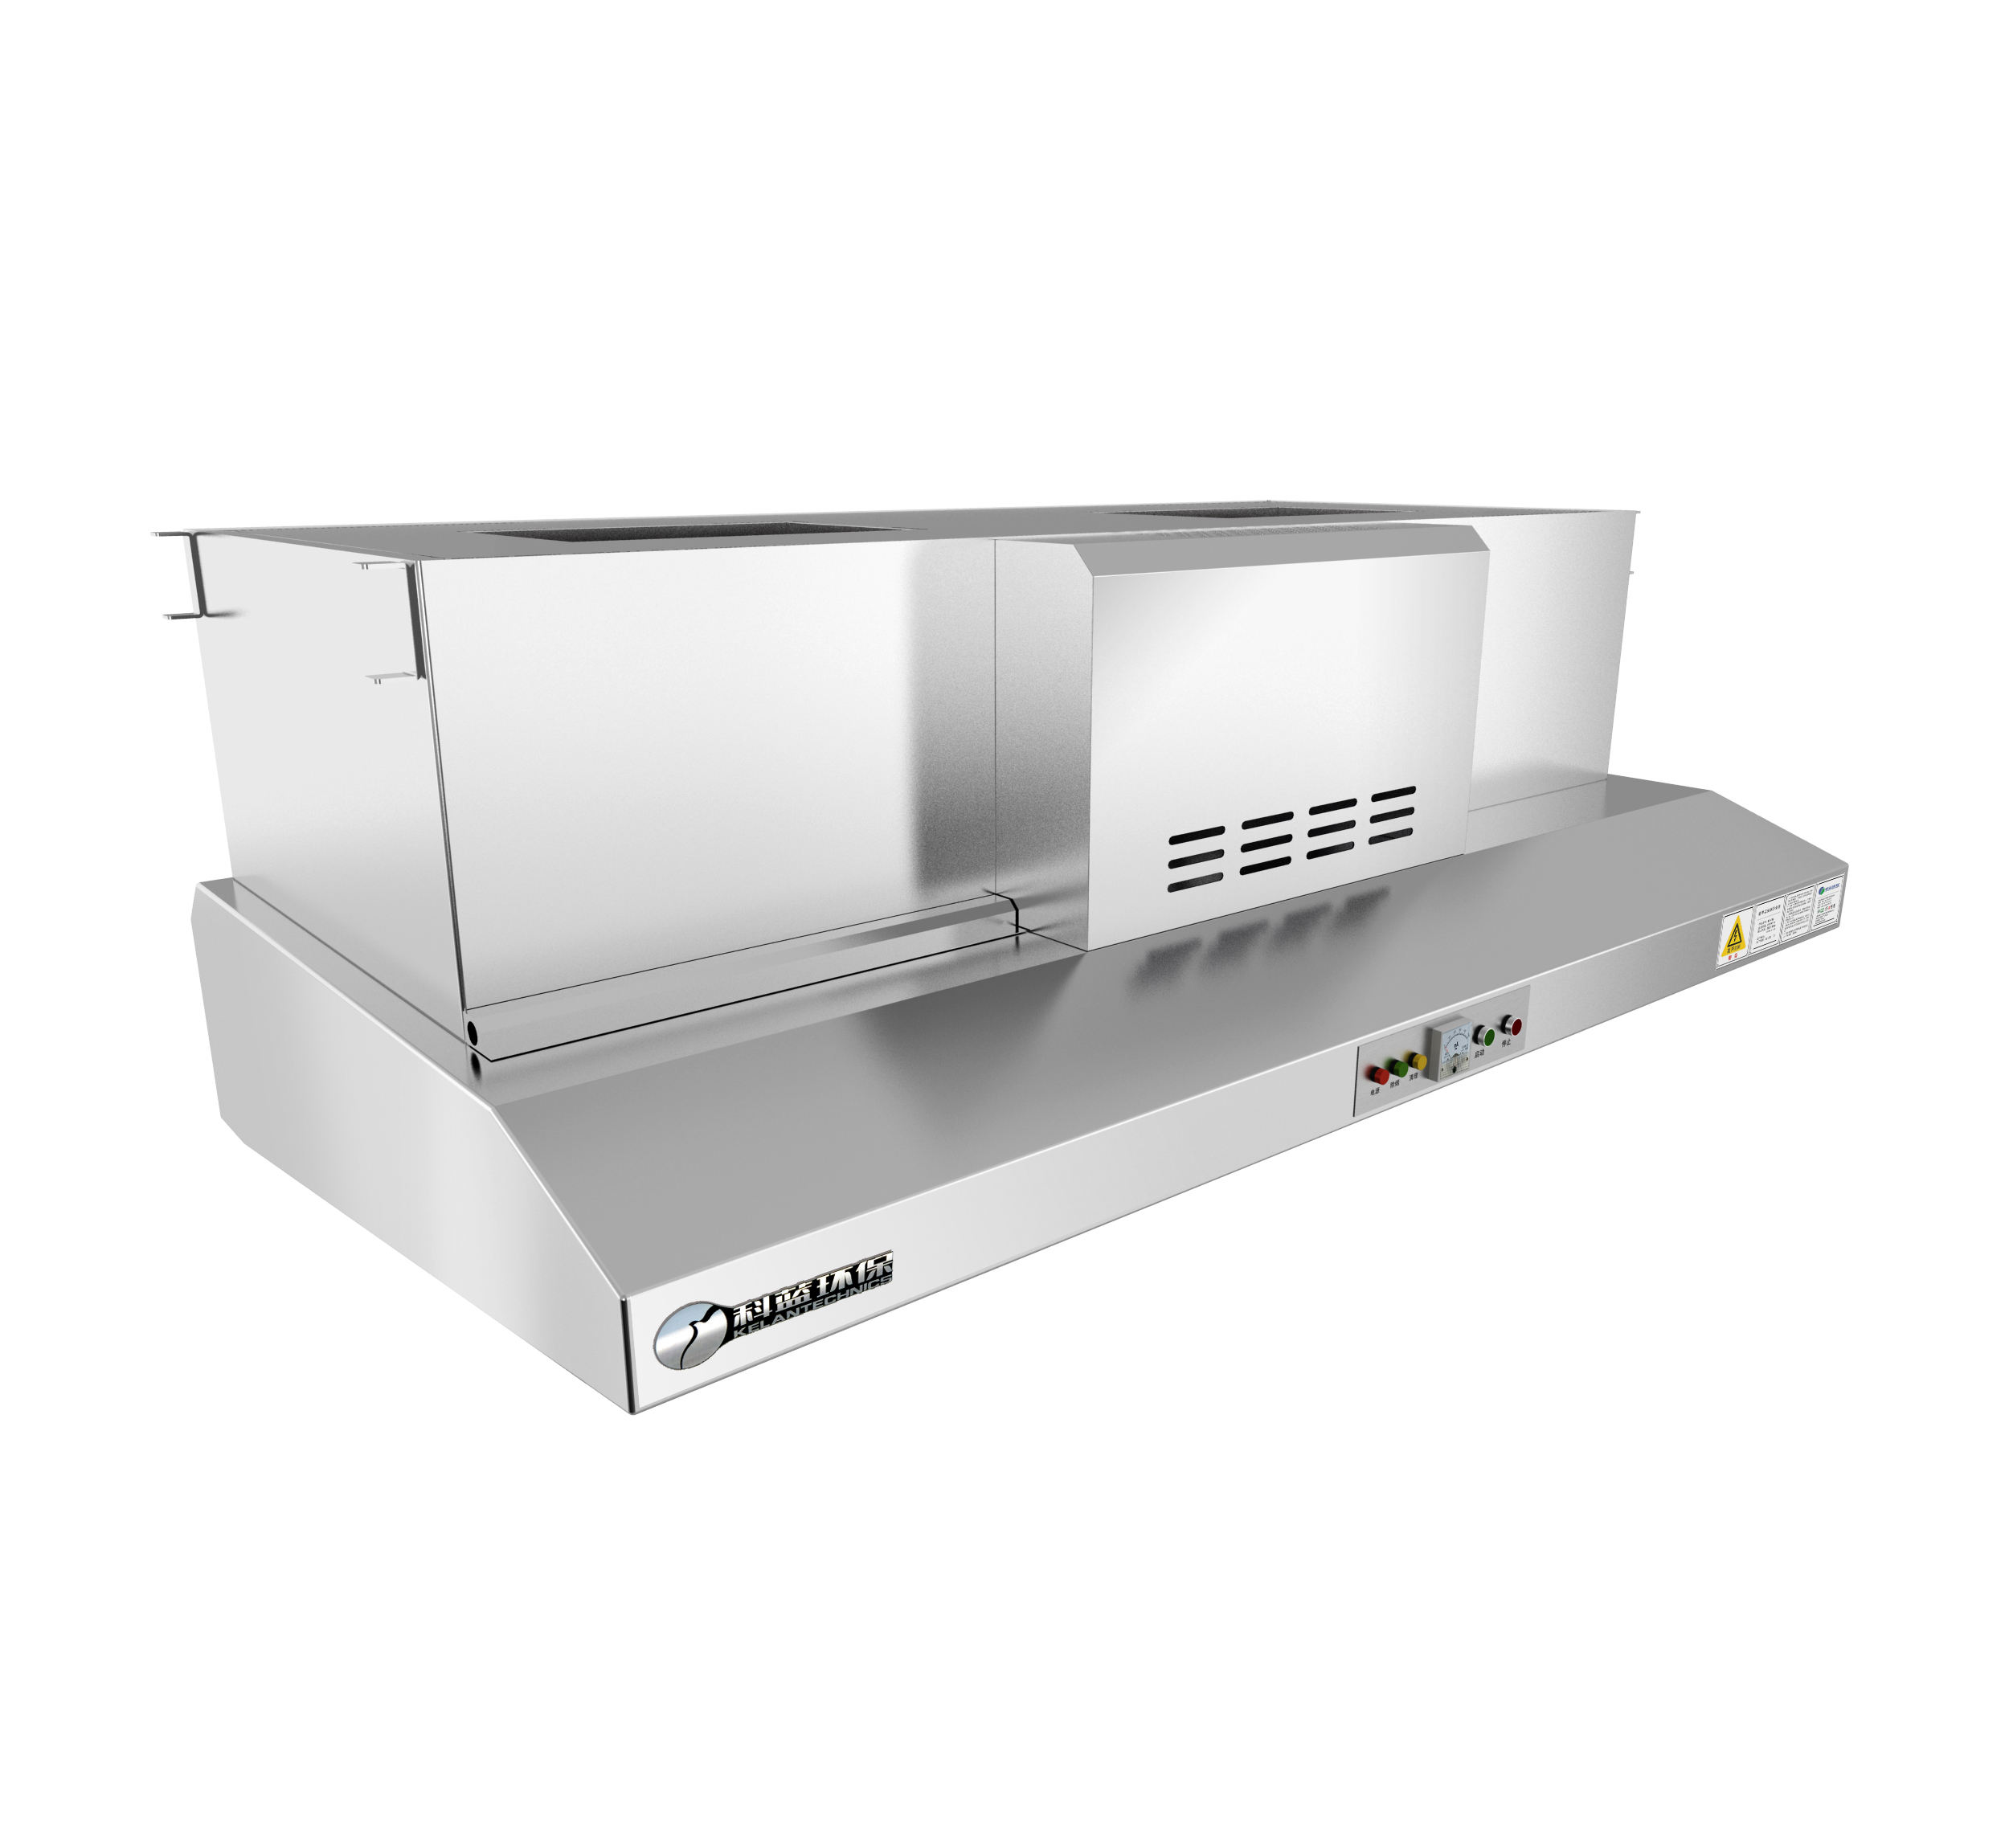 Commercial Kitchen Exhaust Emission Range Hood with ESP Filter